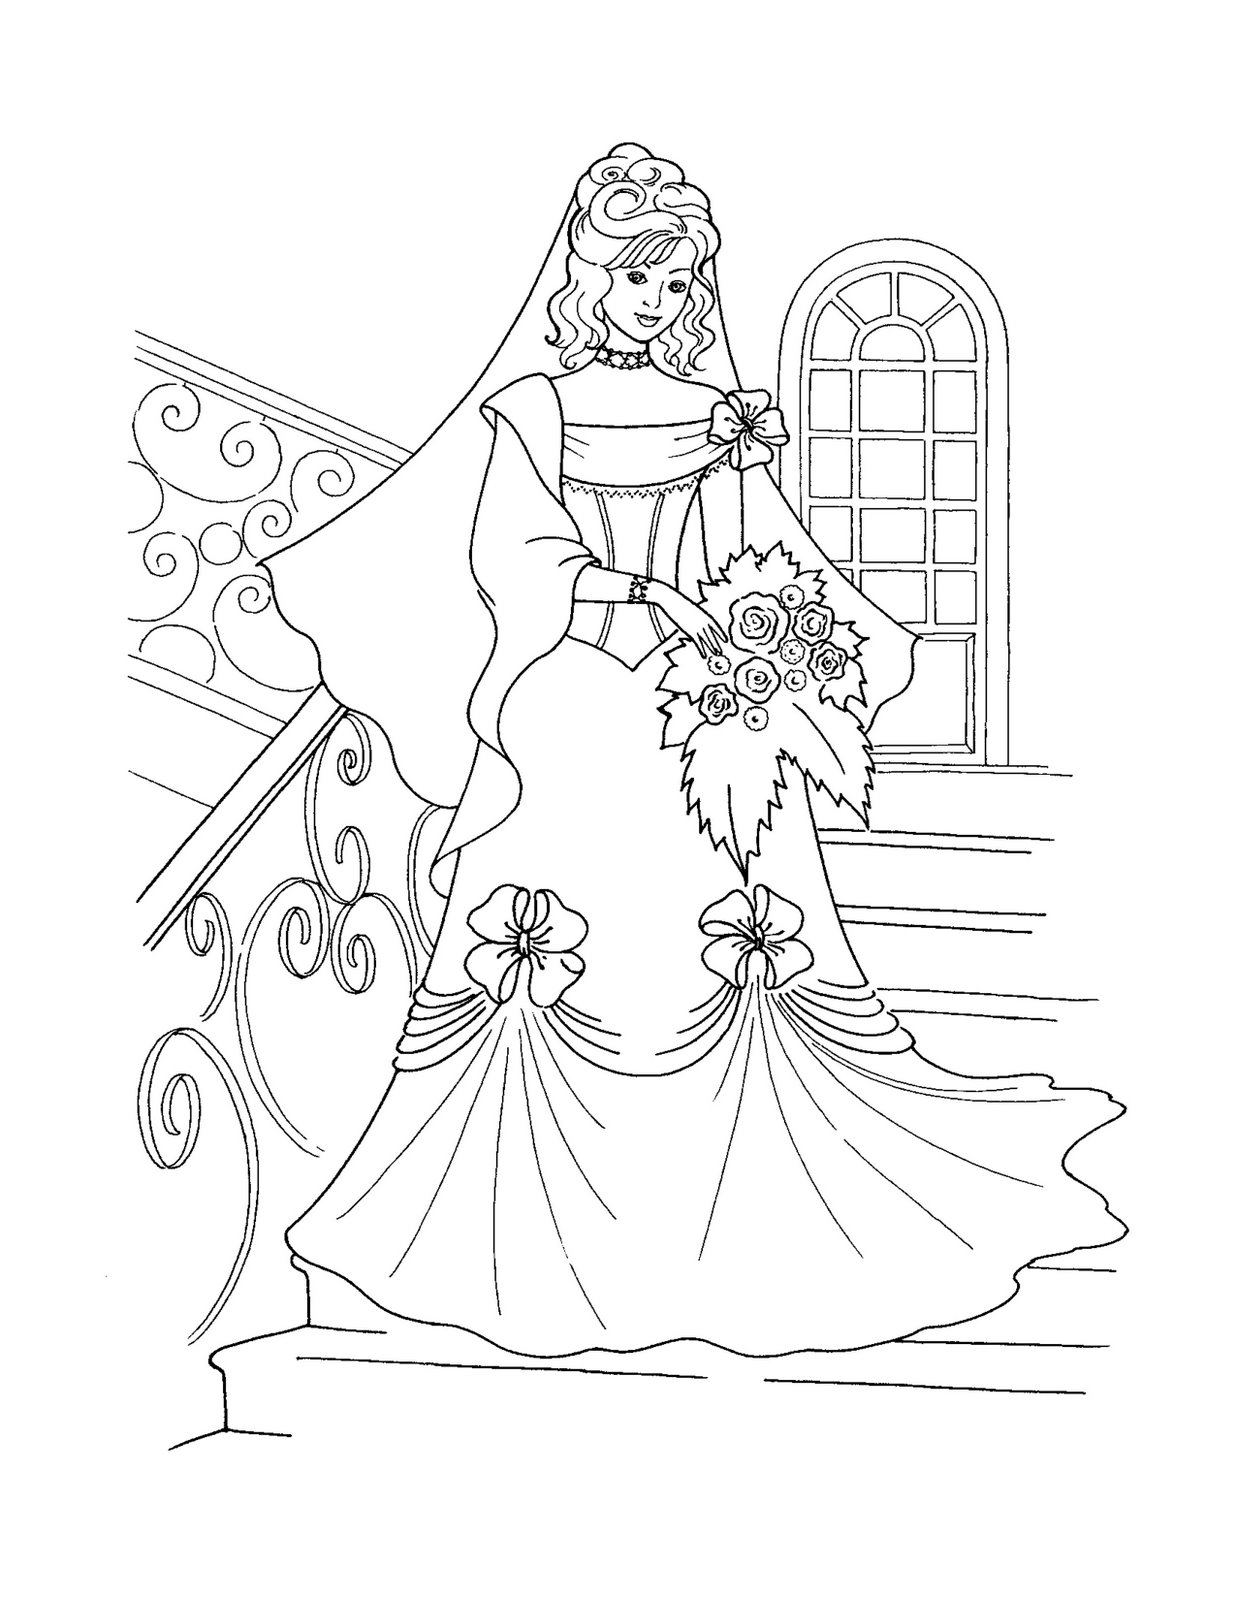 Ariel princess coloring pages free - Disney Princess Castle Coloring Pages